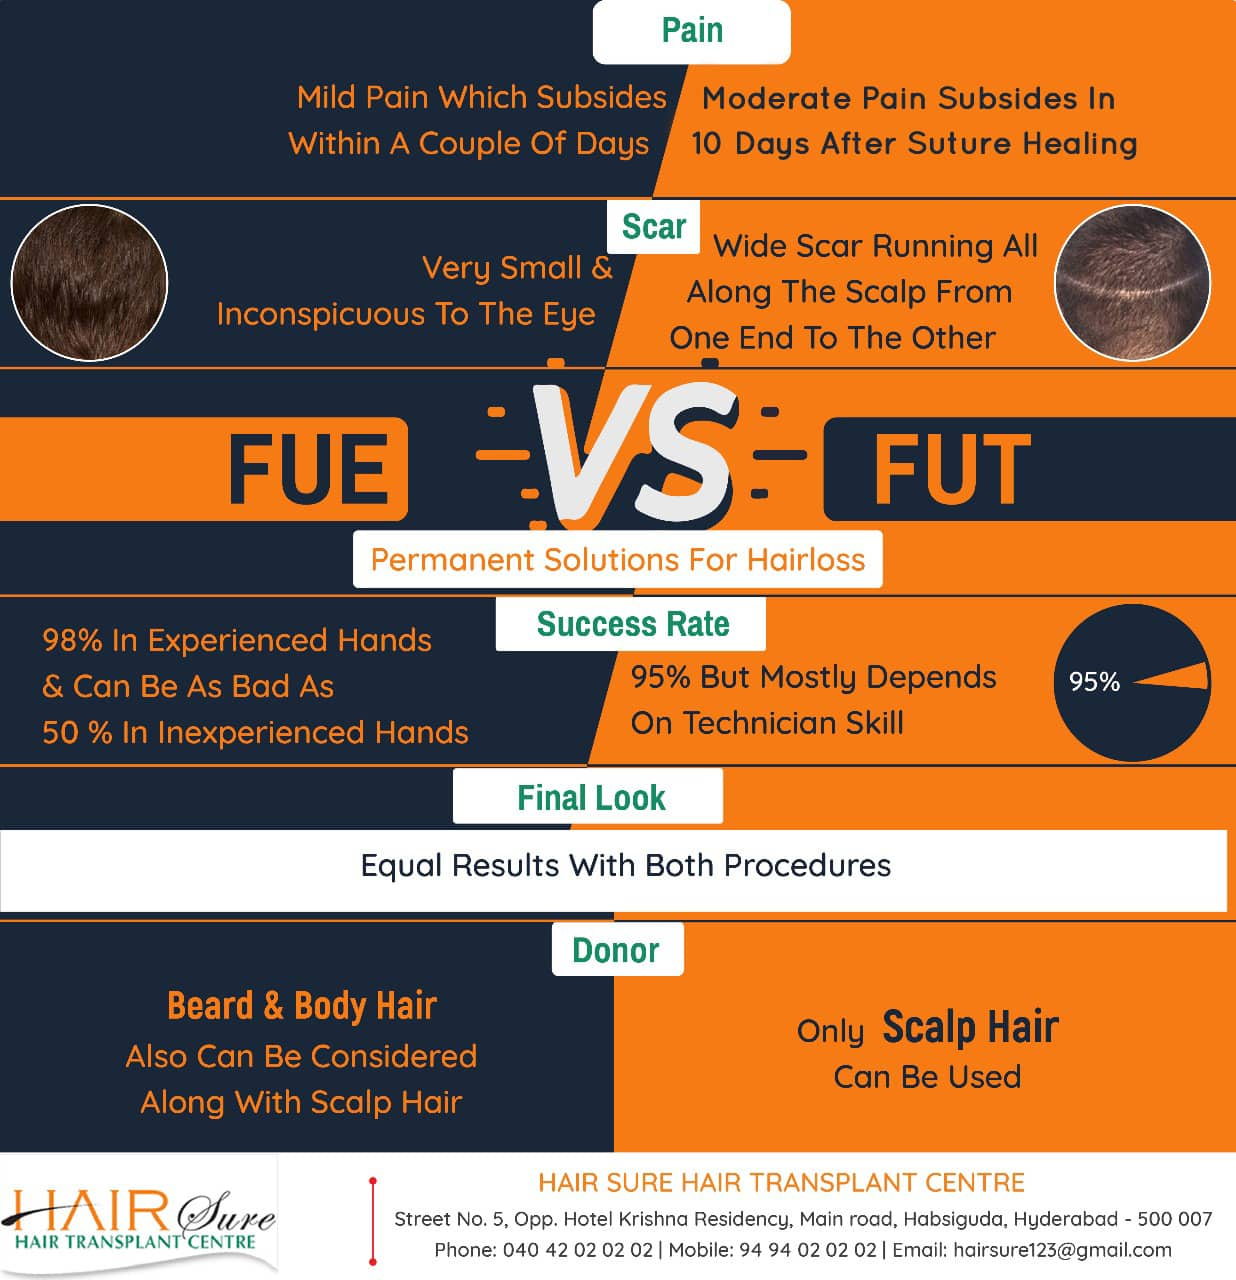 FUE or FUT? What's Your Treatment?